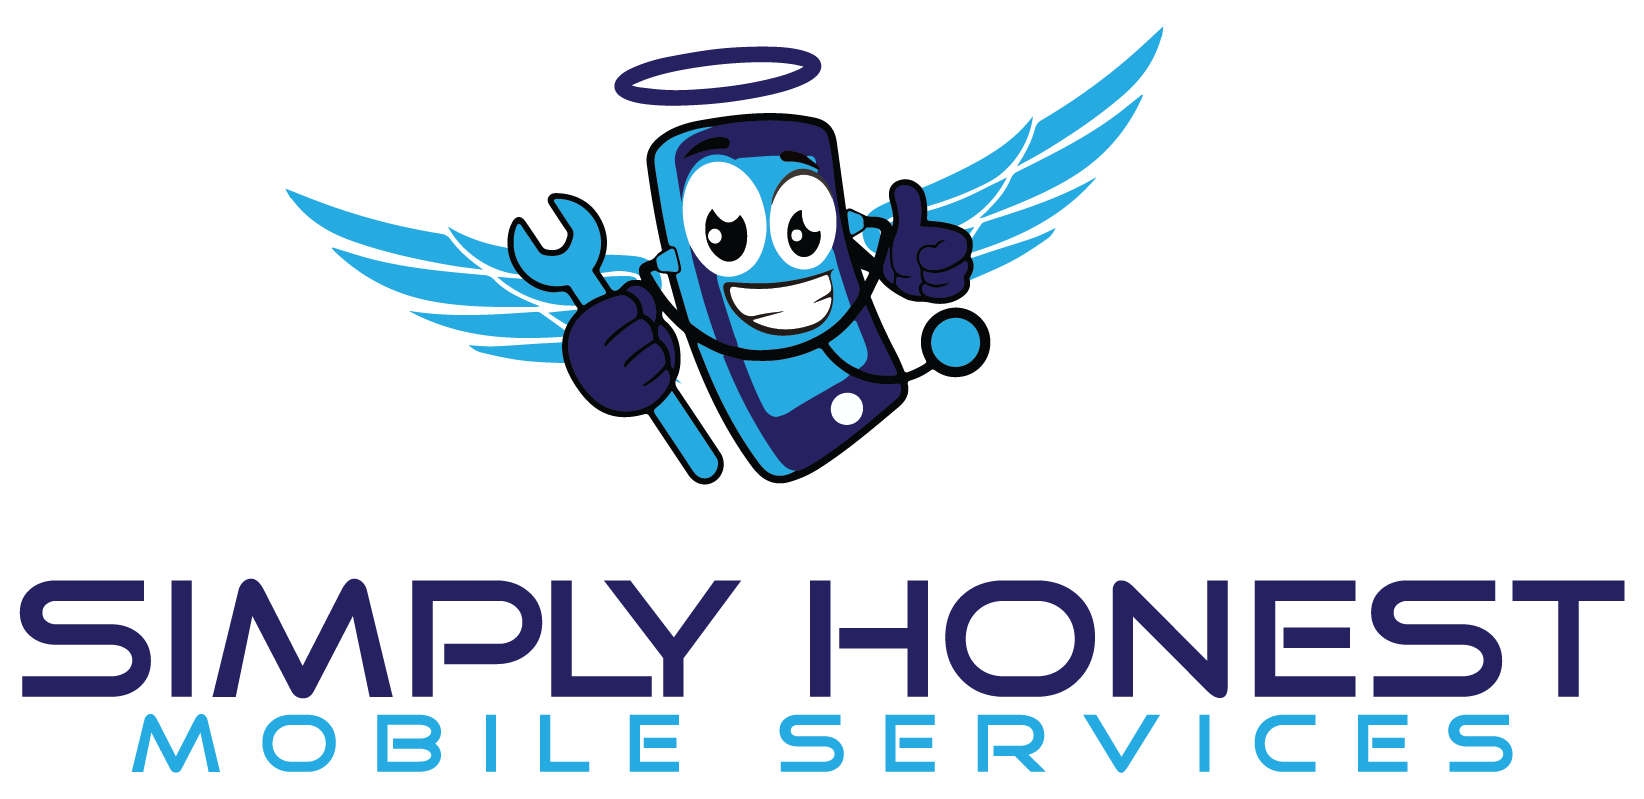 Simply Honest Mobile Services Logo